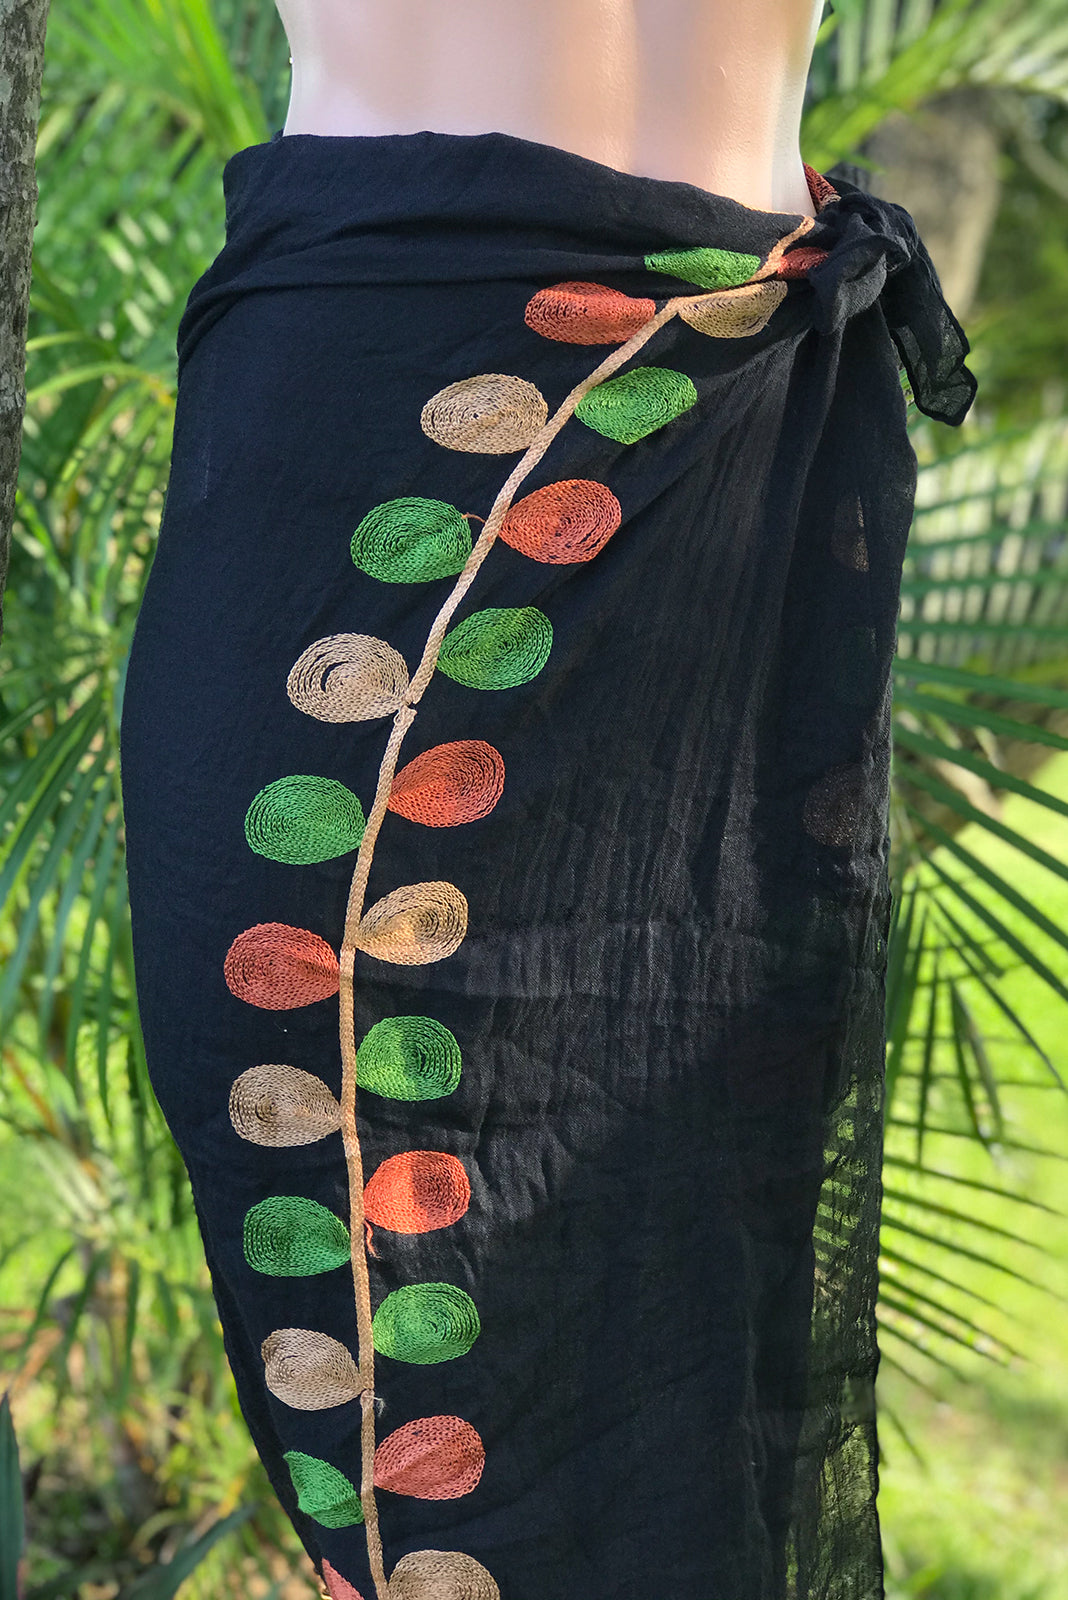 Summer scarf Embroidery is a statement scarf coming in 2 colours, black base or Ecru base with terracotta and green embroidery.